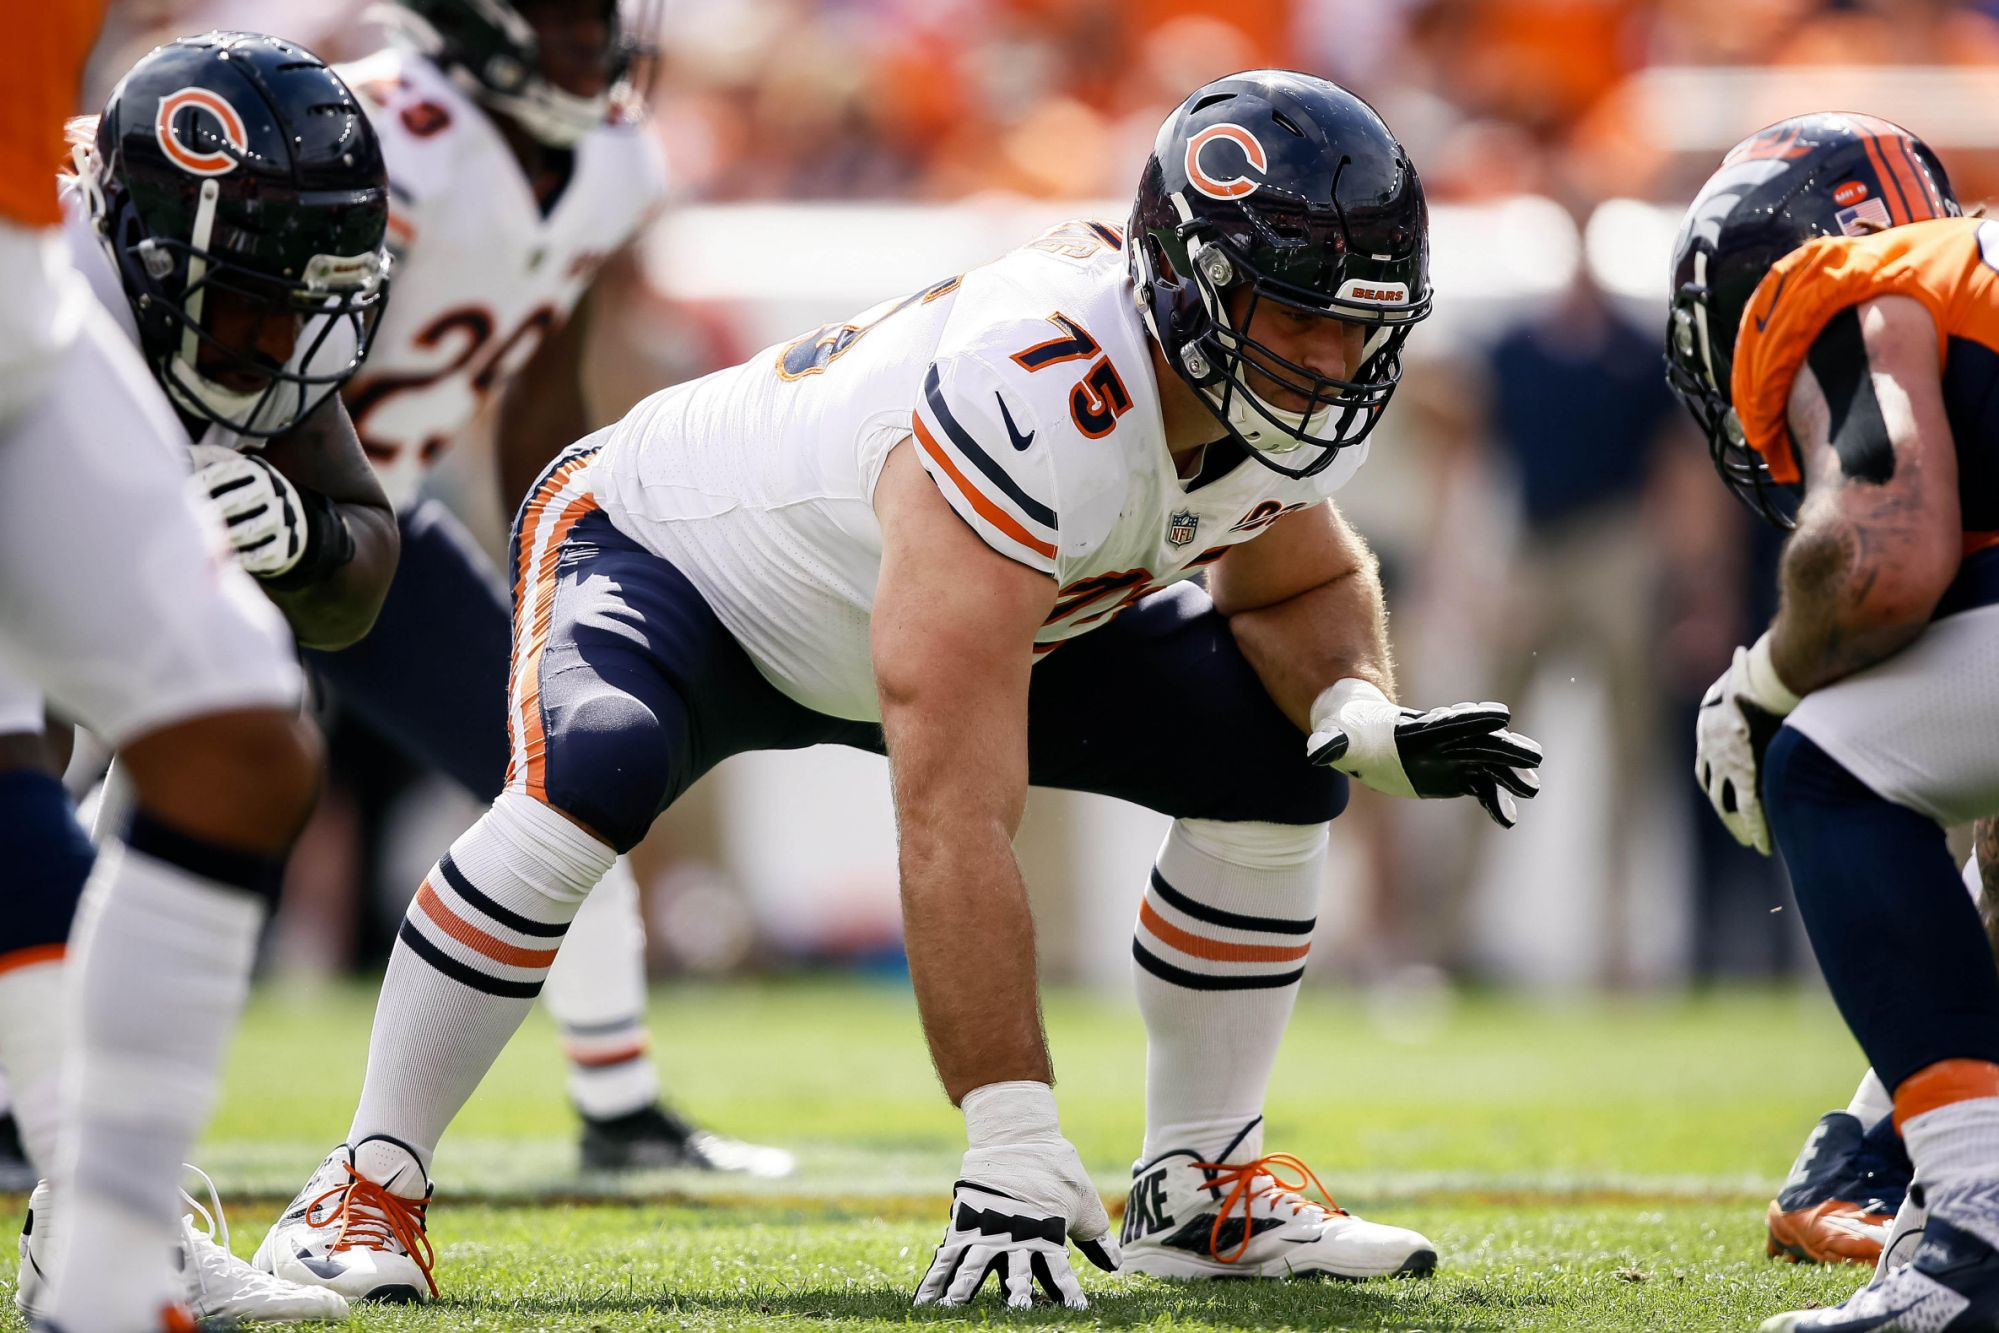 chiefs-og-kyle-long-says-raiders-never-offered-him-contract-on-visit